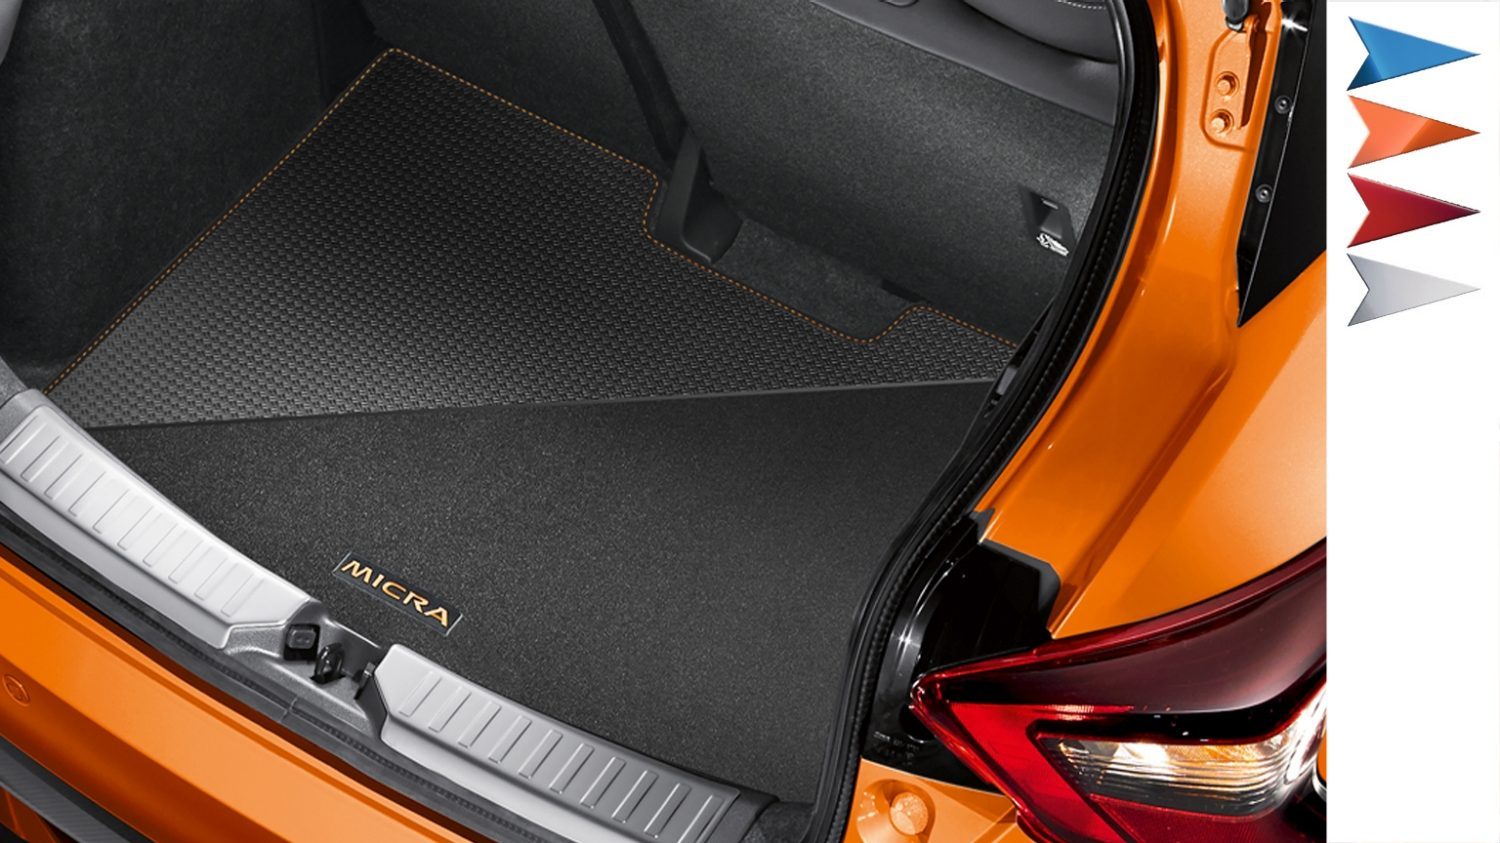 NISSAN MICRA Design Studio Kofferraummatte, wendbar aus Velours und Gummi, in Energy Orange